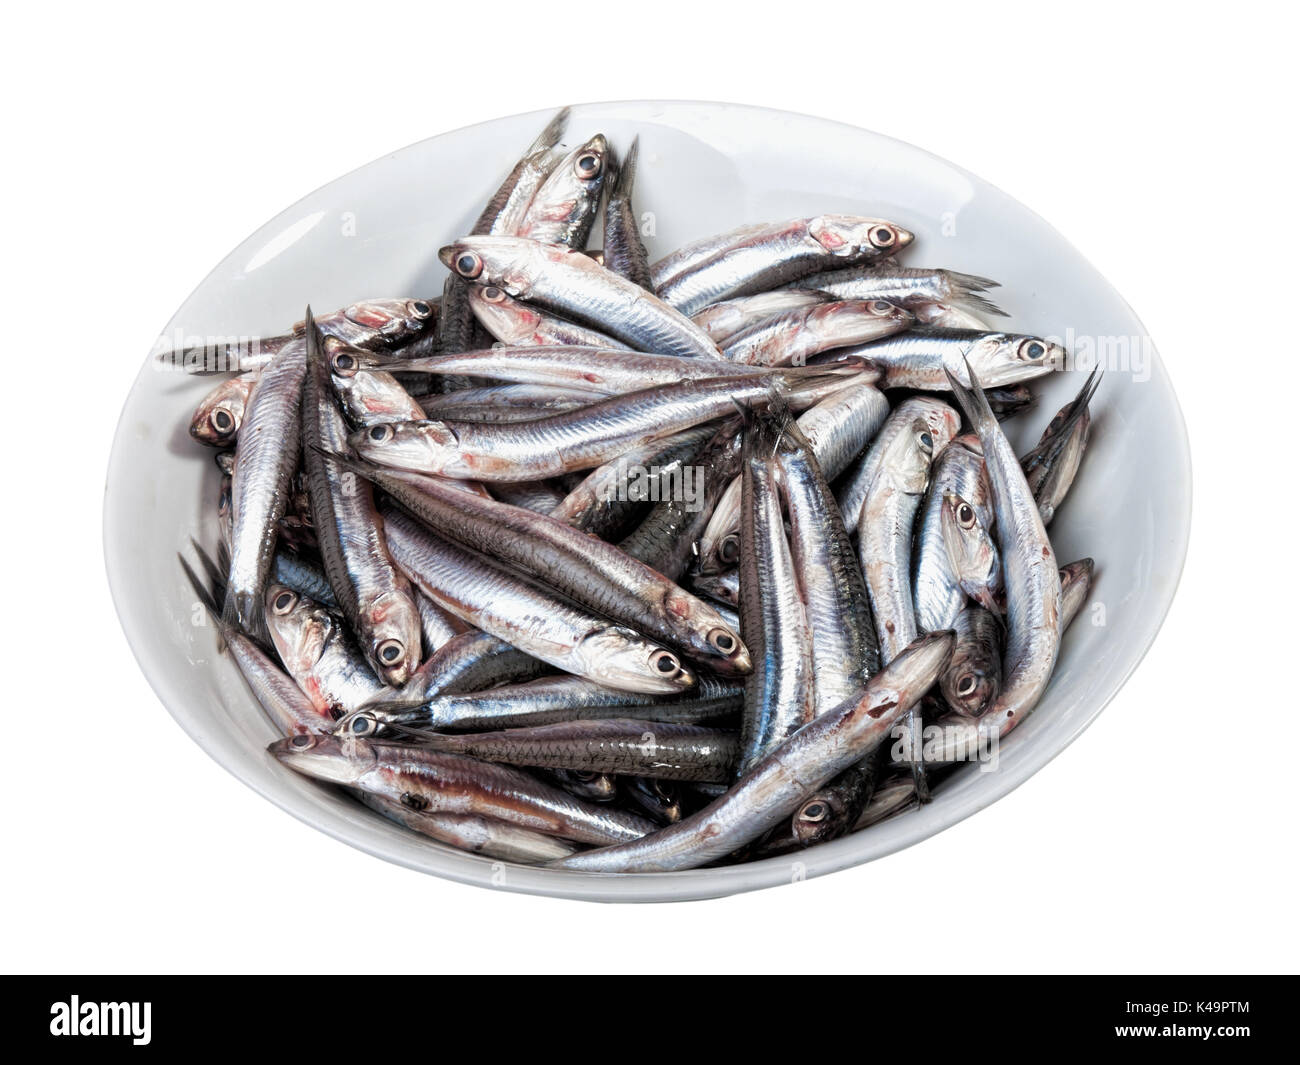 Raw Anchovies In A Plate Ready For Preparing In The Kitchen - Stock Image